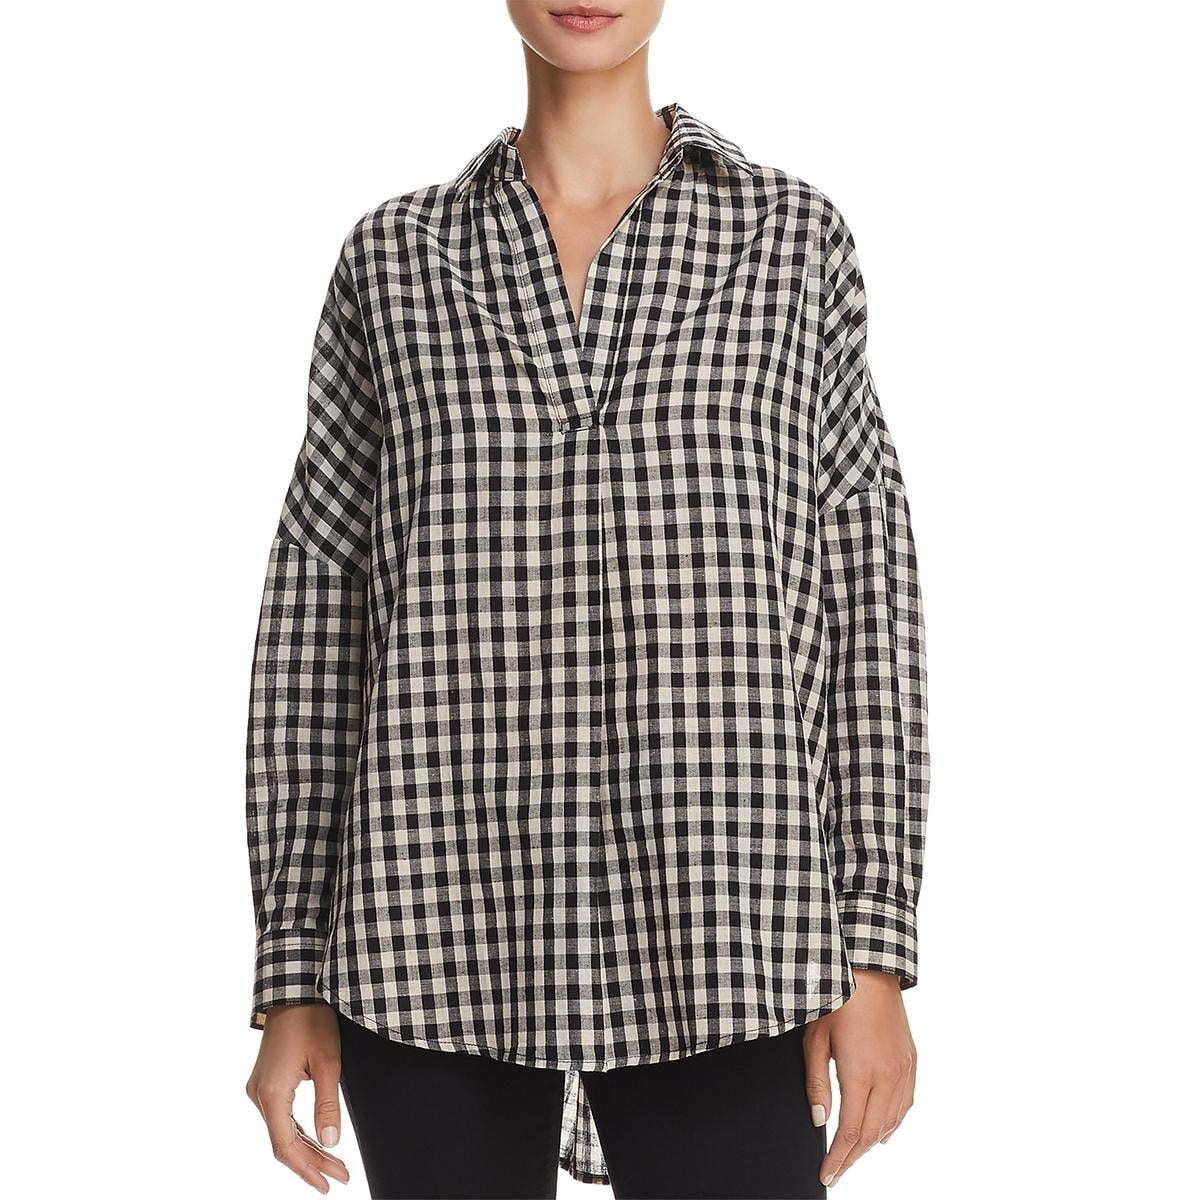 dcde228a Shop French Connection Womens Button-Down Top Pleated Gingham - Free  Shipping On Orders Over $45 - Overstock.com - 25723406